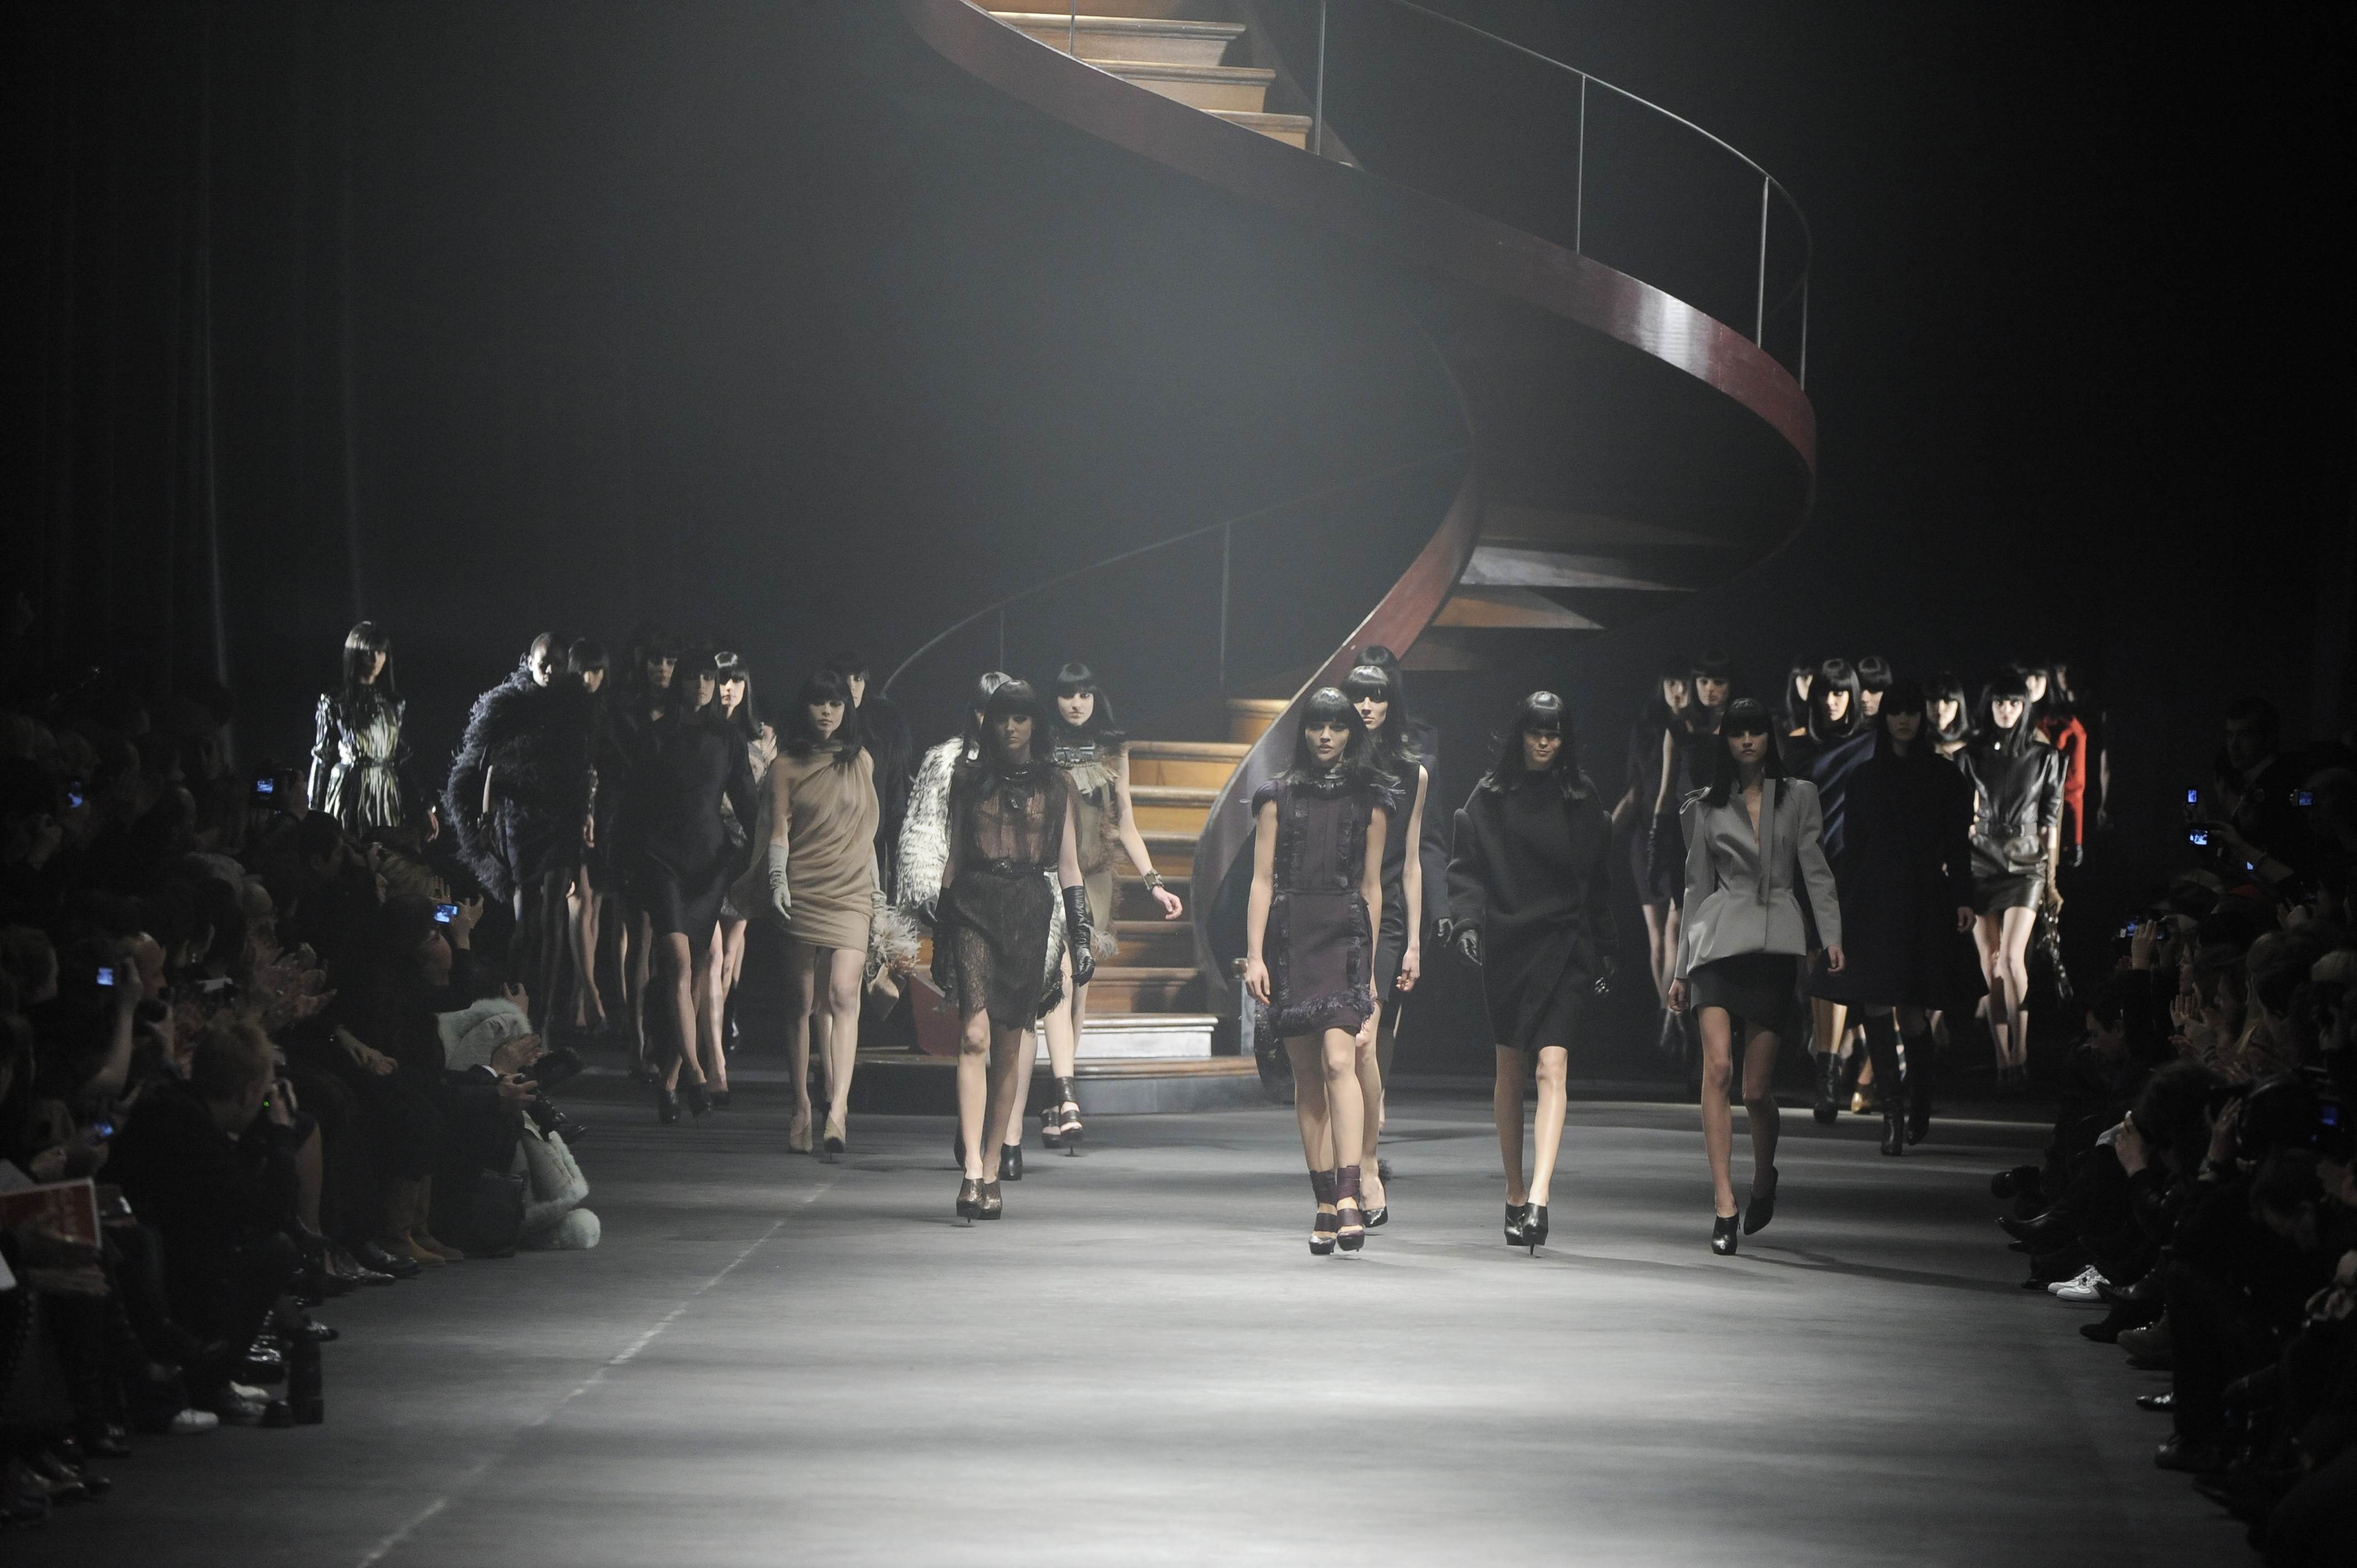 Models on the runway at Lanvin's fall 2010 show.